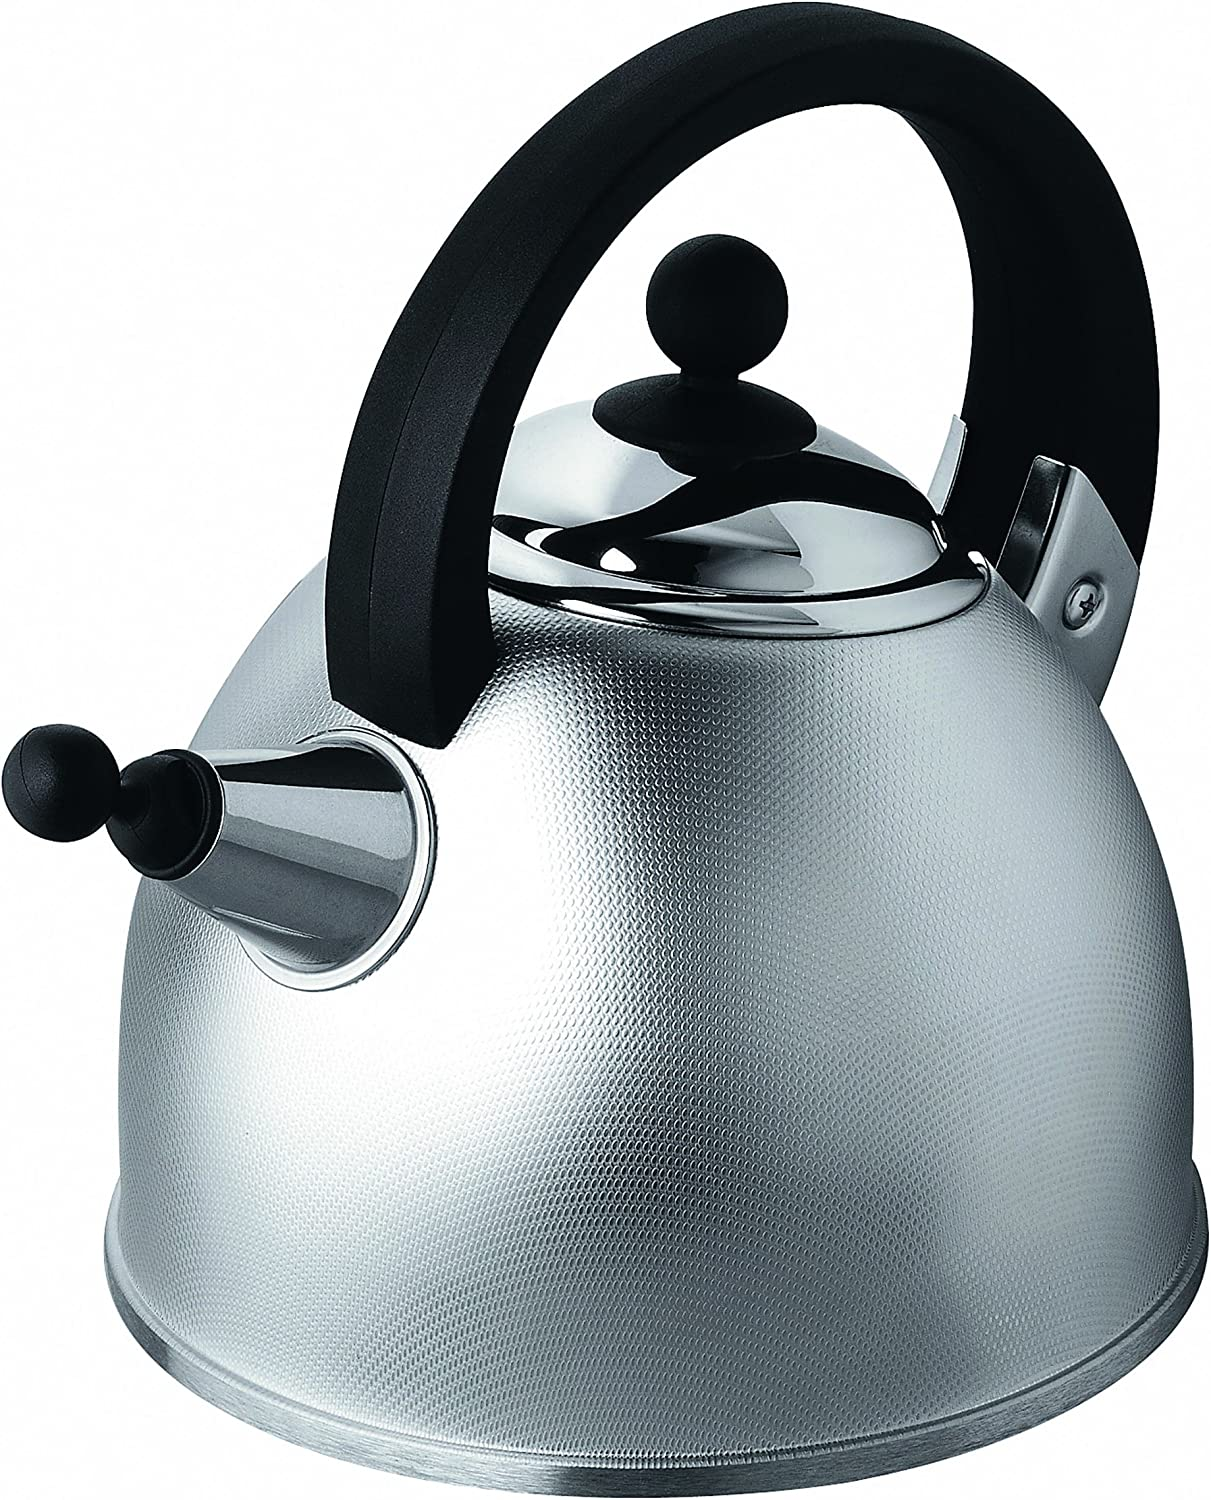 Accessories Melio 37100 Teapot Kettle